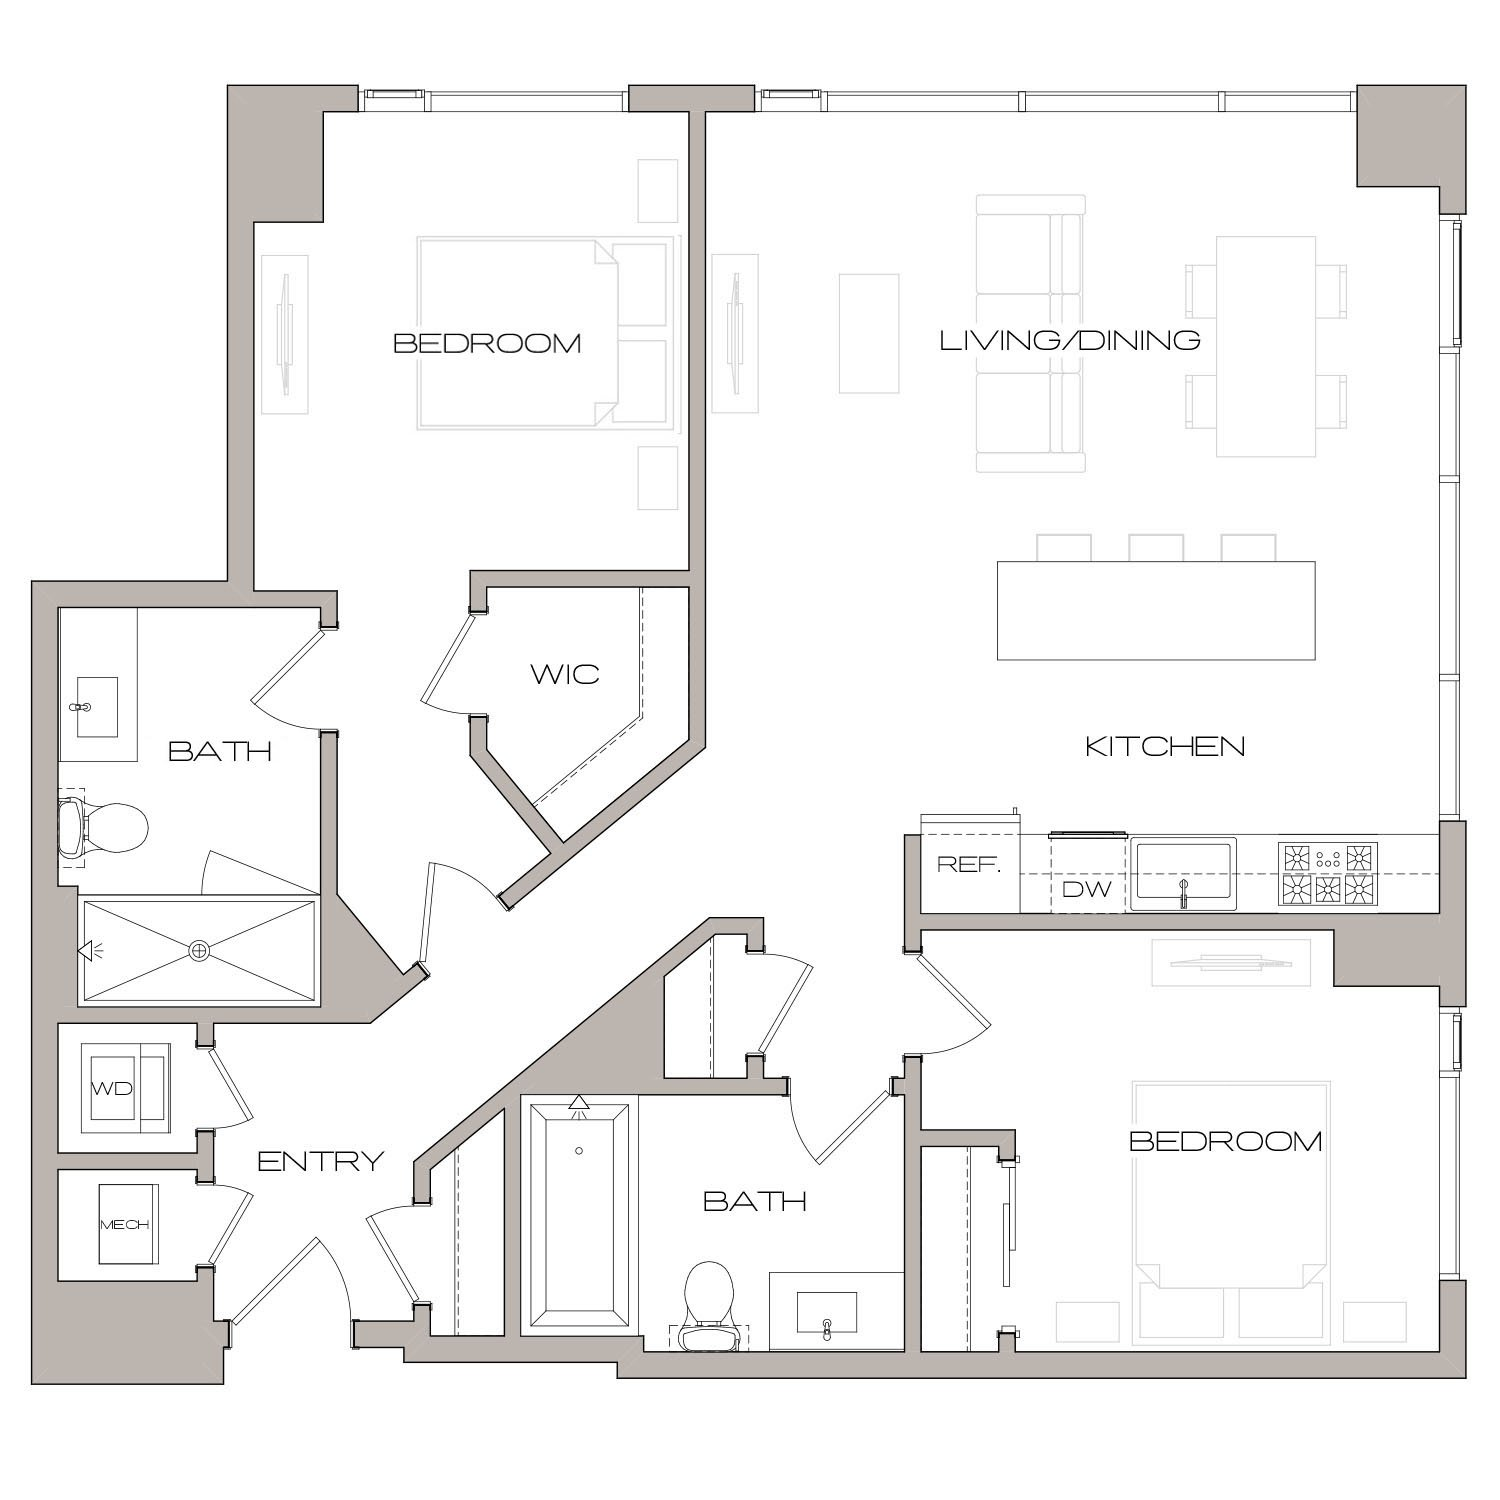 B 2 floor plan diagram. Two bedrooms, two bathrooms, an open kitchen and living area, and a washer dryer.